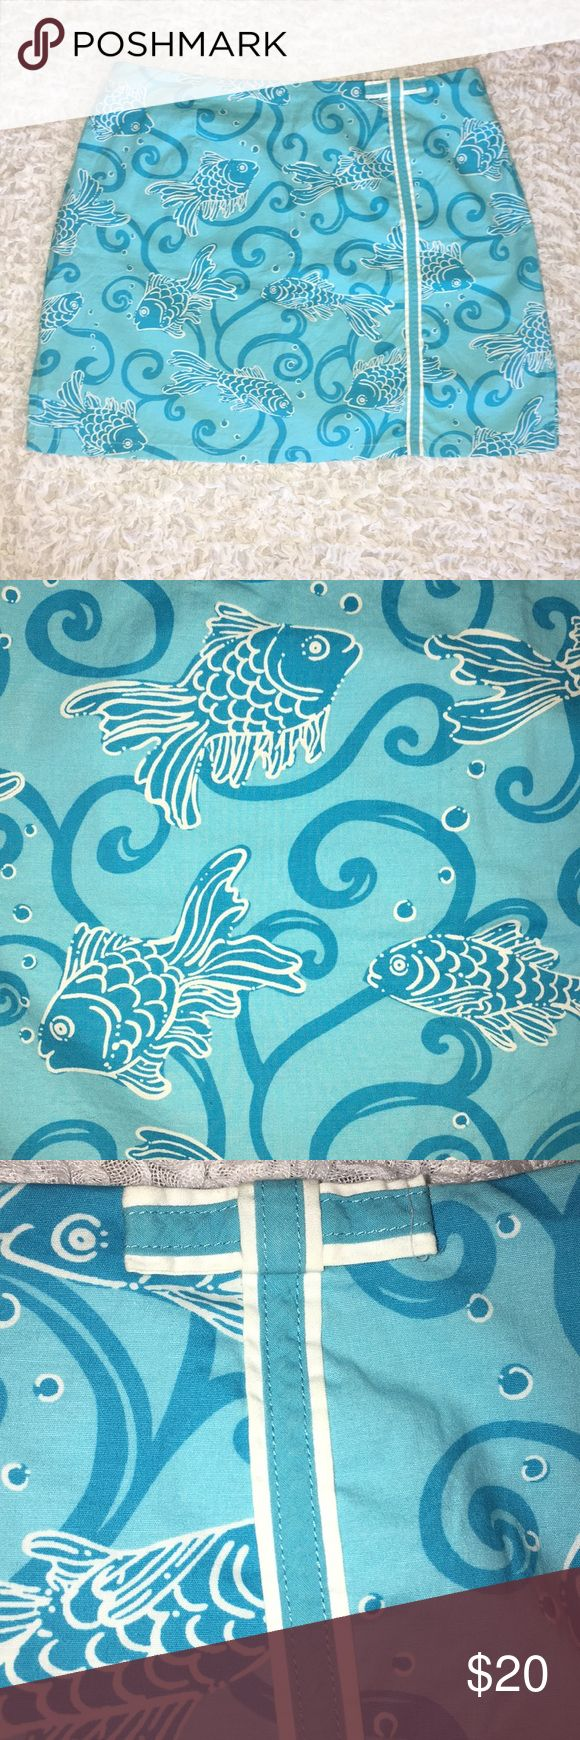 Lilly Pulitzer Lenore Skort - Blue Koi Great for summer! This pattern is to die for, bright and fun!  Lenore Skort from Lilly Pulitzer Perfect condition - no tag  97% cotton, 3% spandex   Machine wash cold  No bleach Tumble dry low or hang to dry. Lilly Pulitzer Skirts Mini